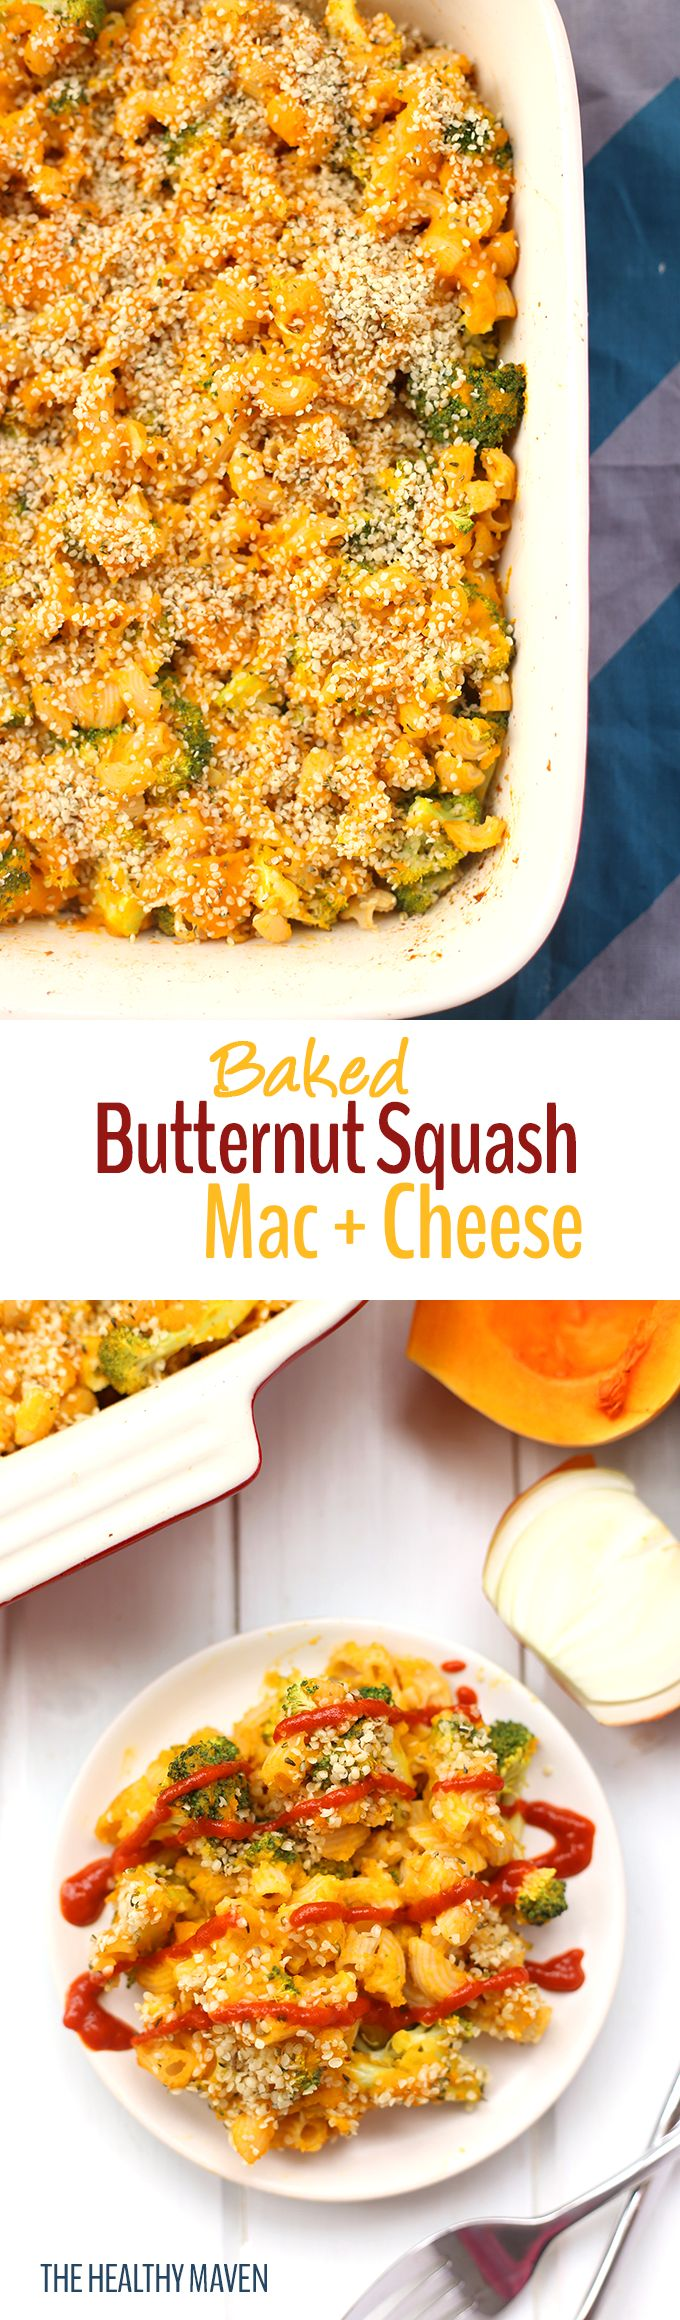 """Ditch the dairy with this vegan Baked Butternut Squash Mac and Cheese Recipe! It's made with gluten-free noodles, a health-kick from broccoli and a fake-out """"cheese"""" sauce made from butternut squash and cashew milk! #meatlessmondaynight"""